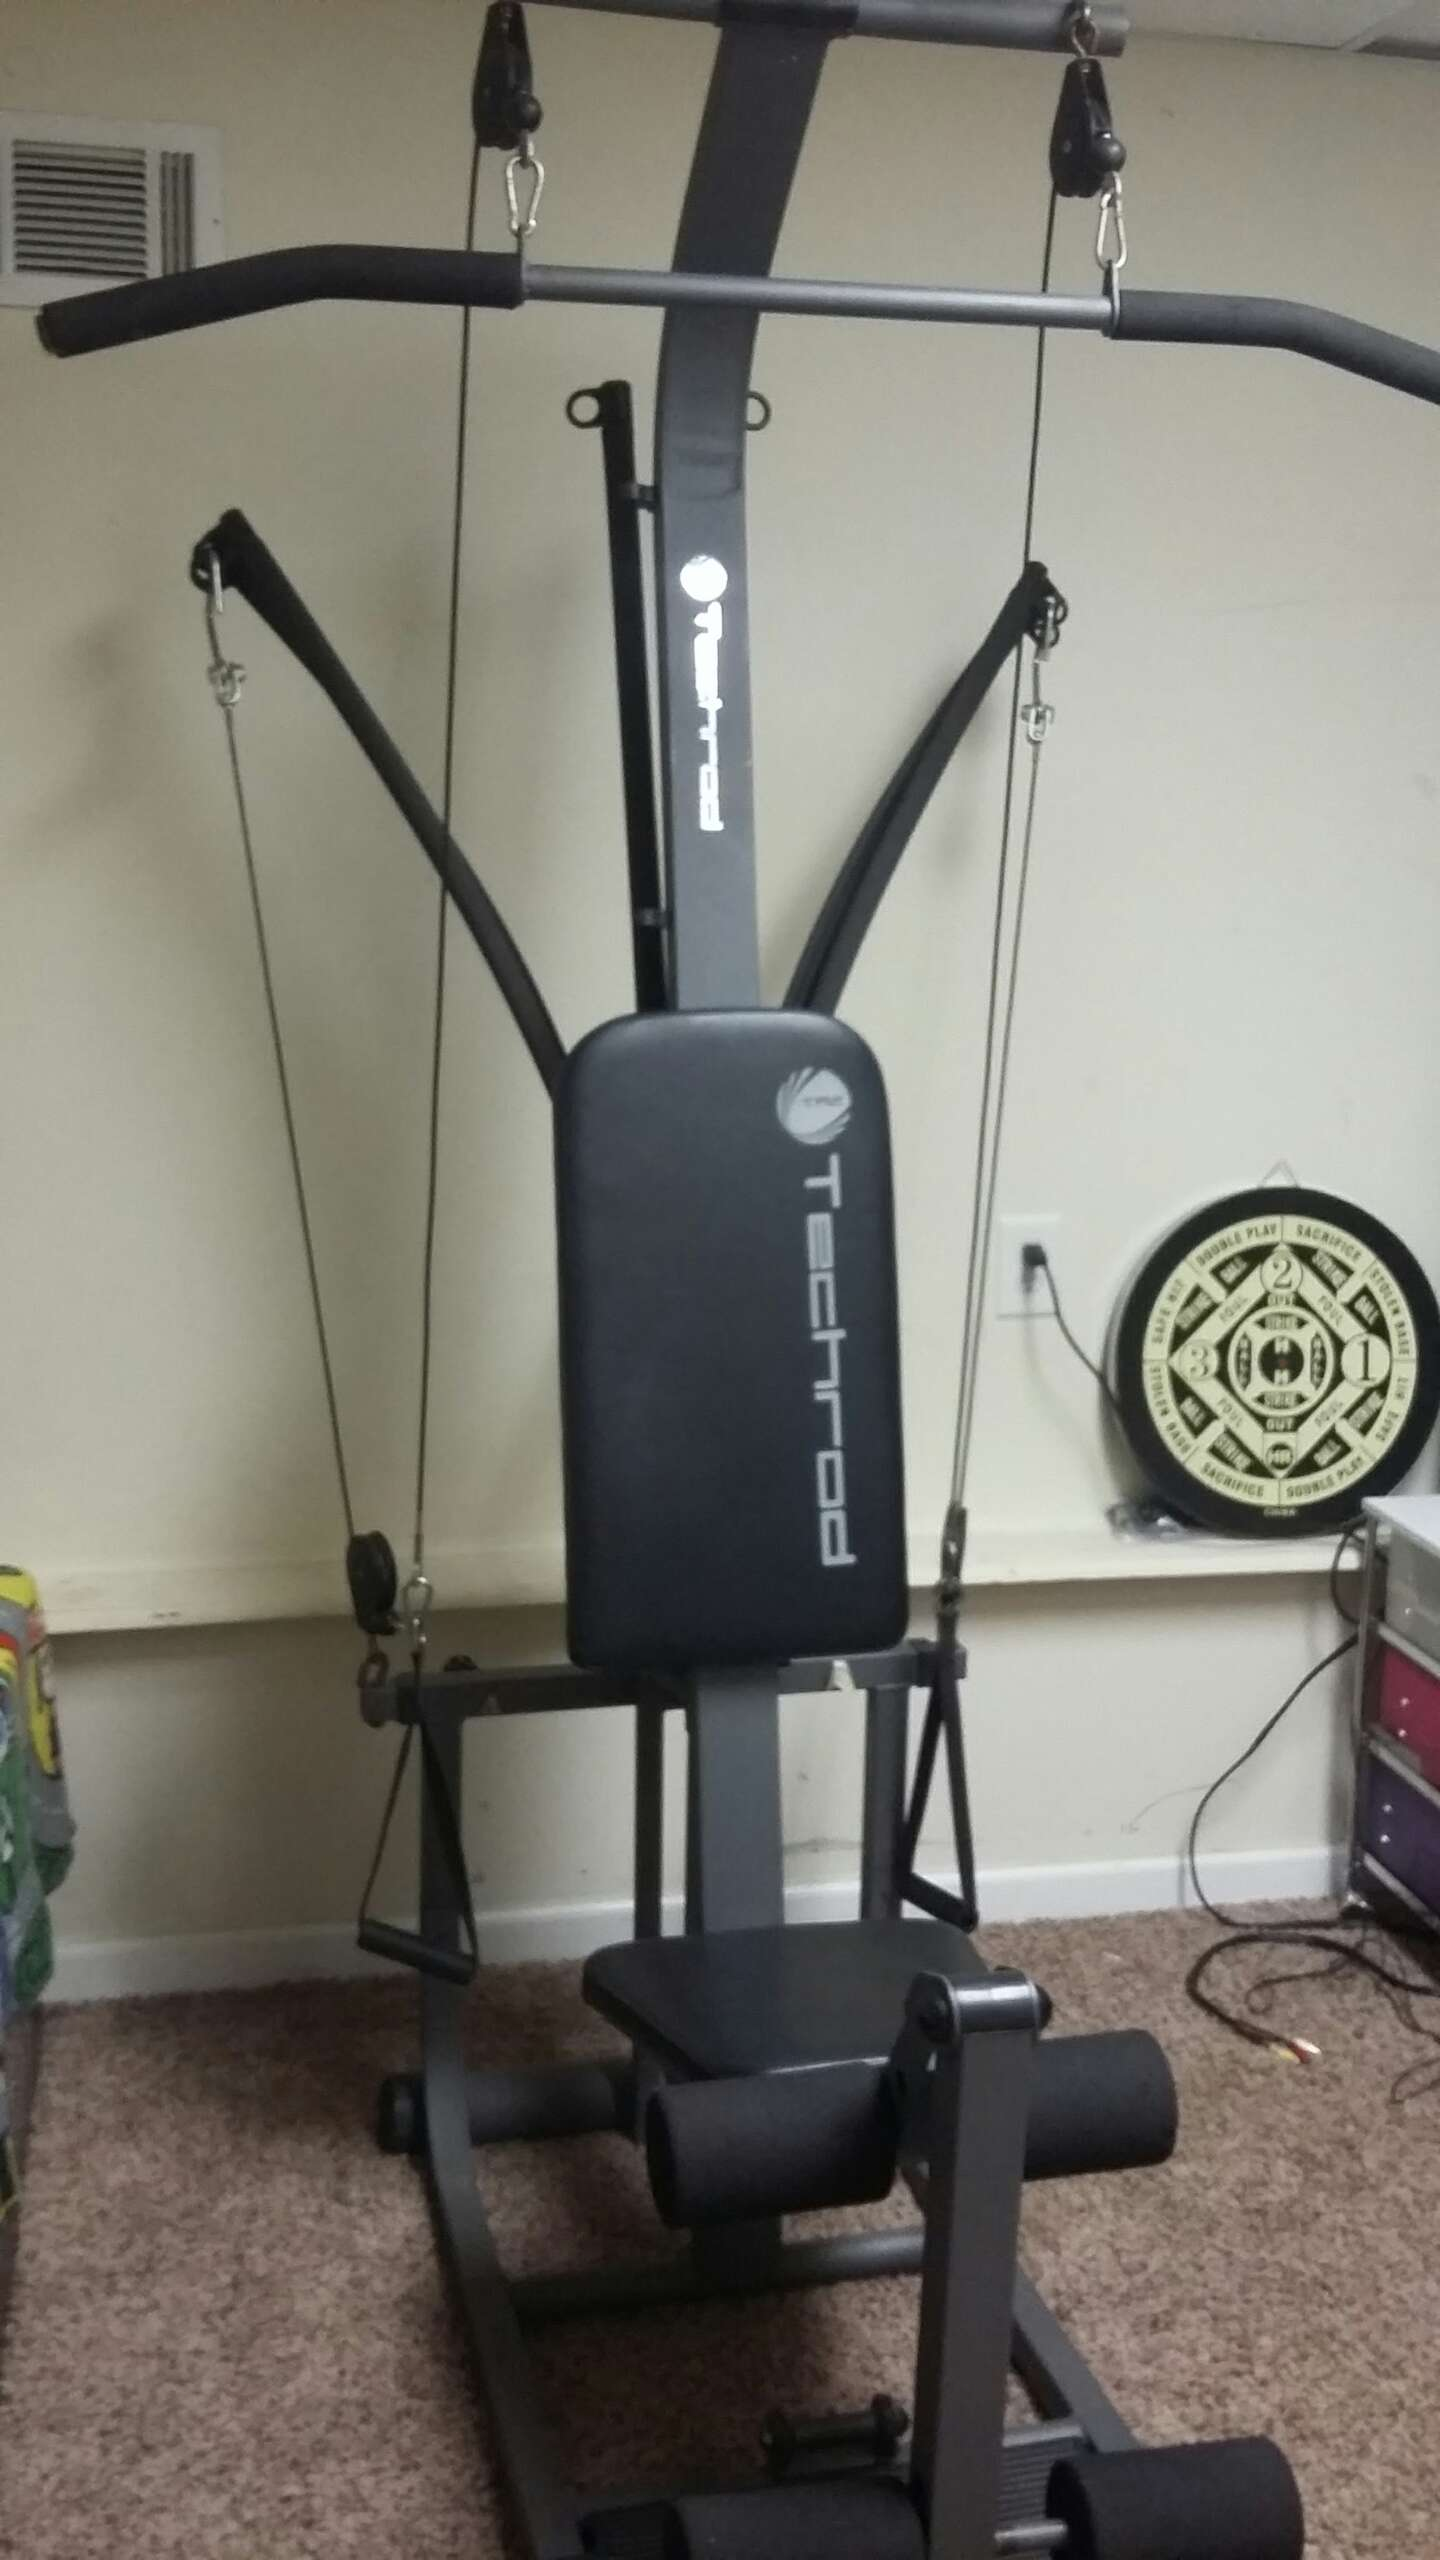 Techrod Tr Home Gym For Sale In Rockmart GA Miles Buy And Sell - Home gym equipment for sale